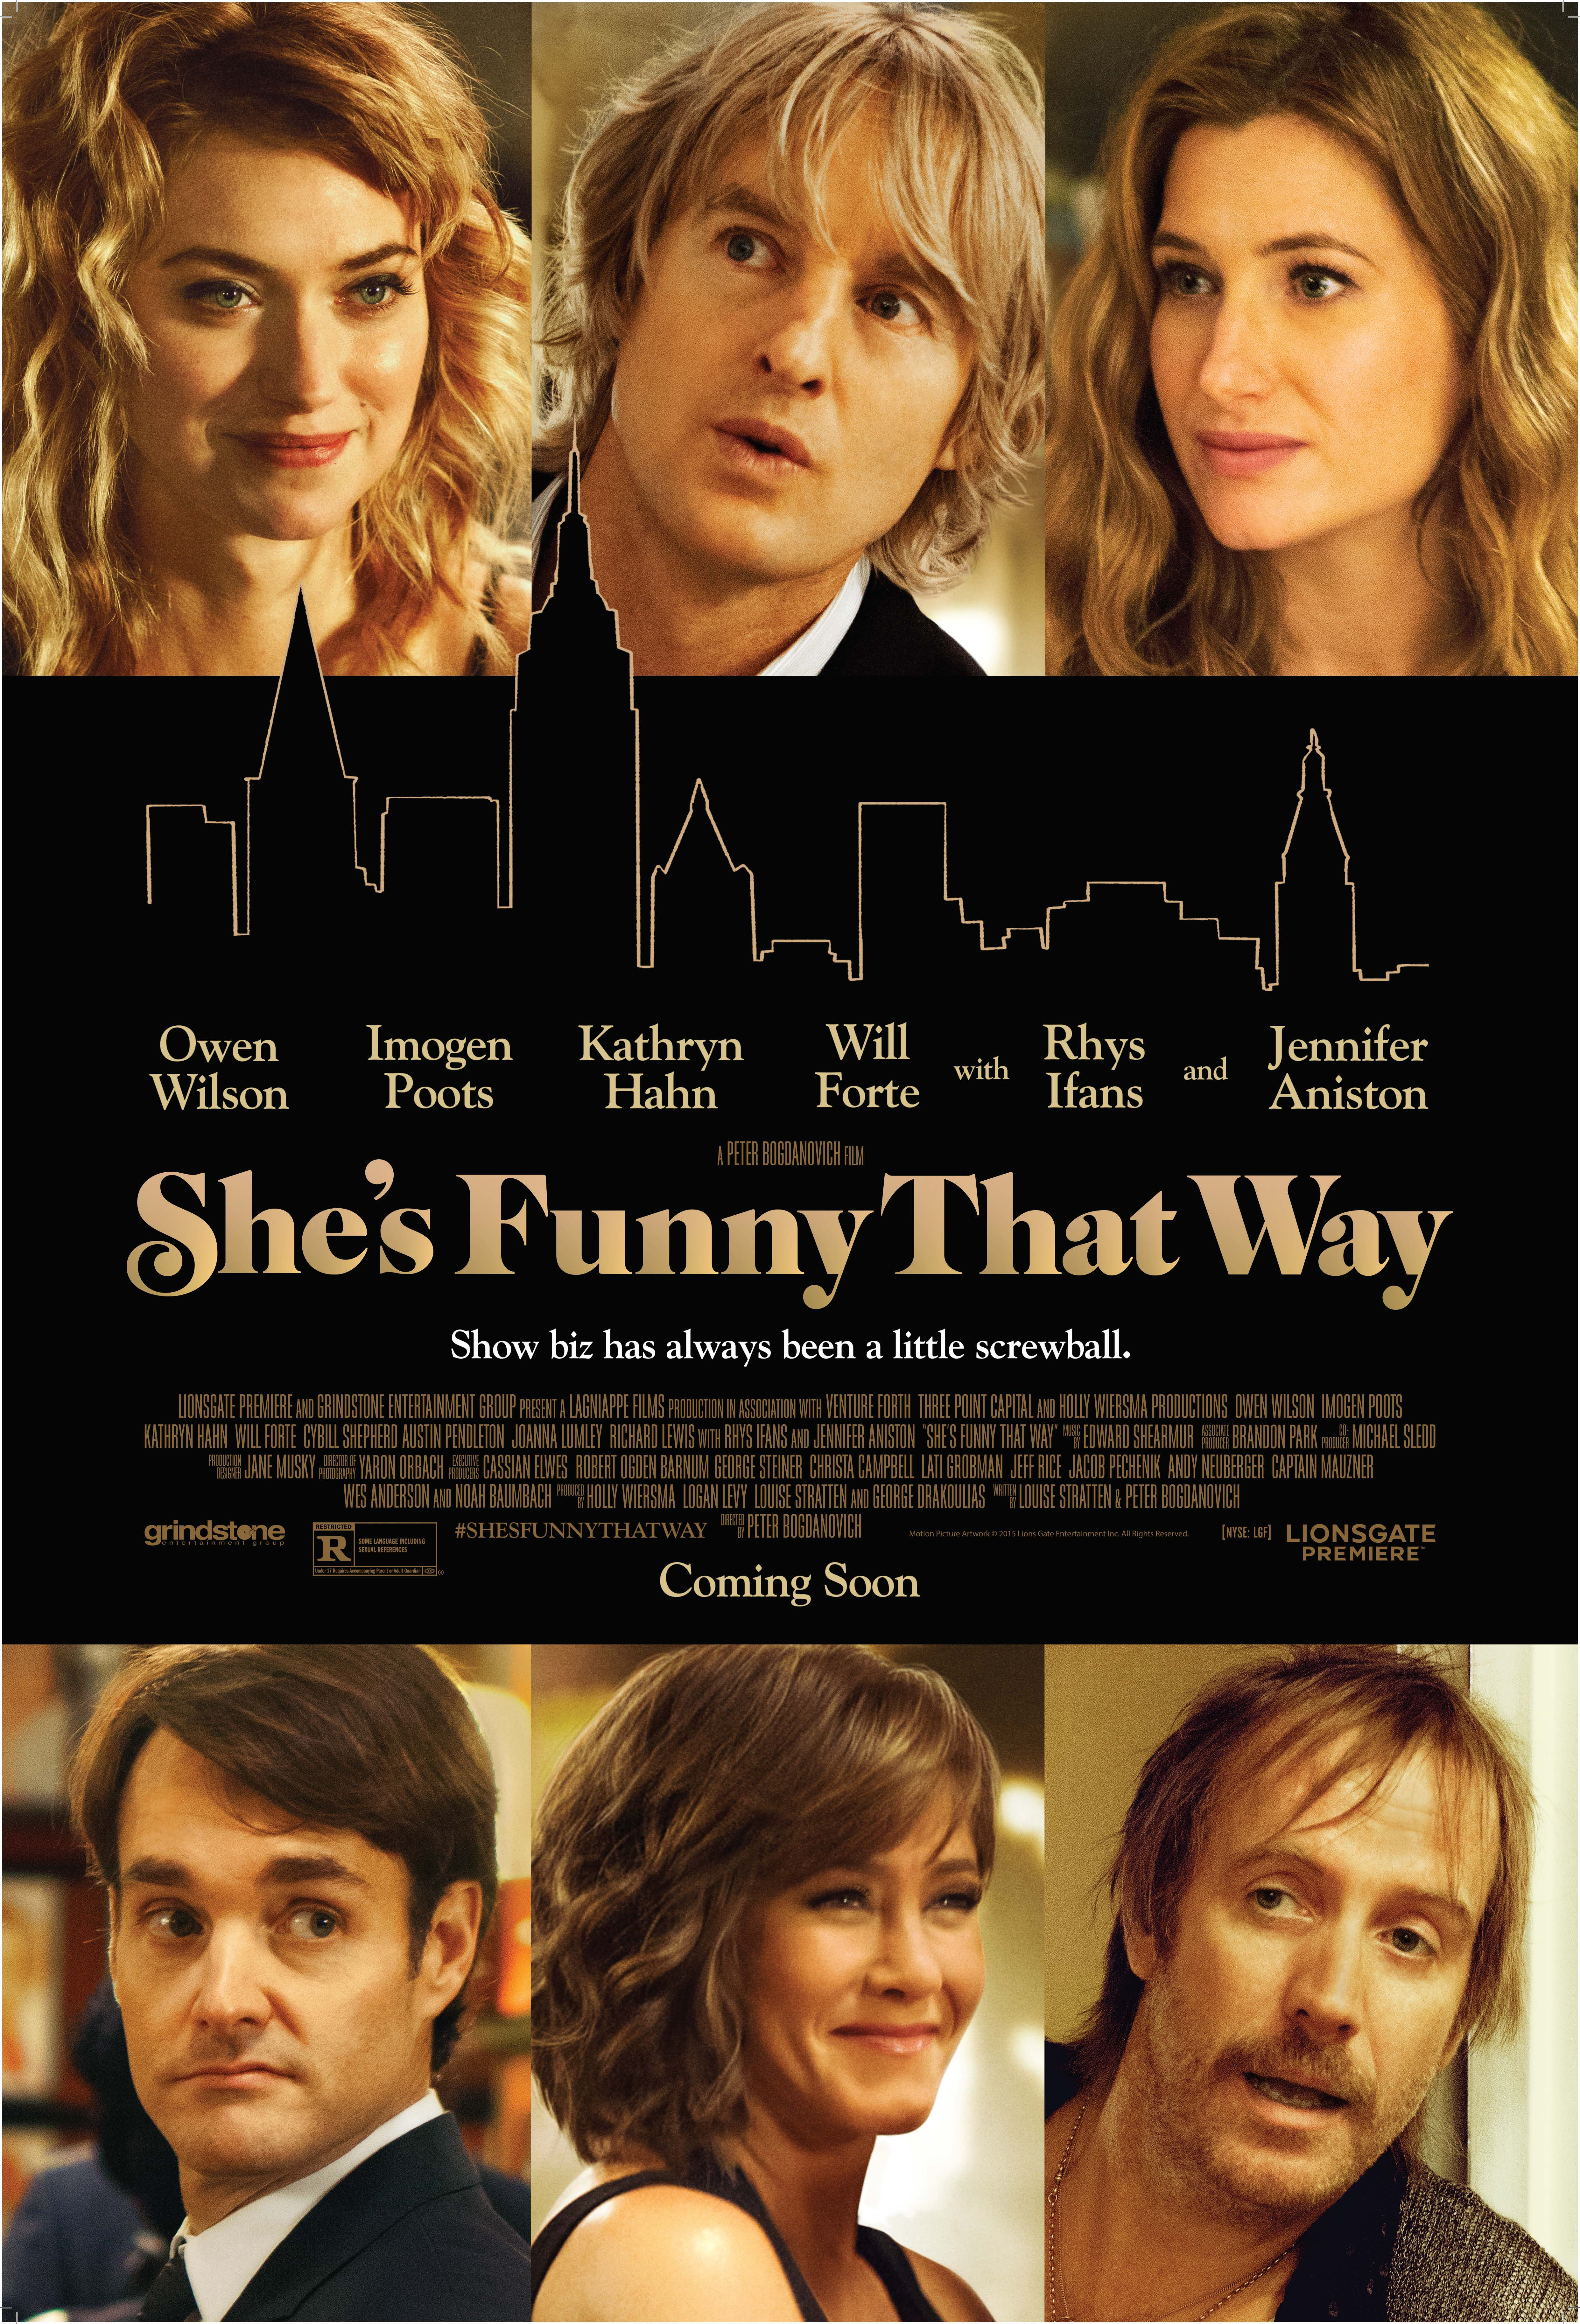 She's Funny That Way full movie streaming